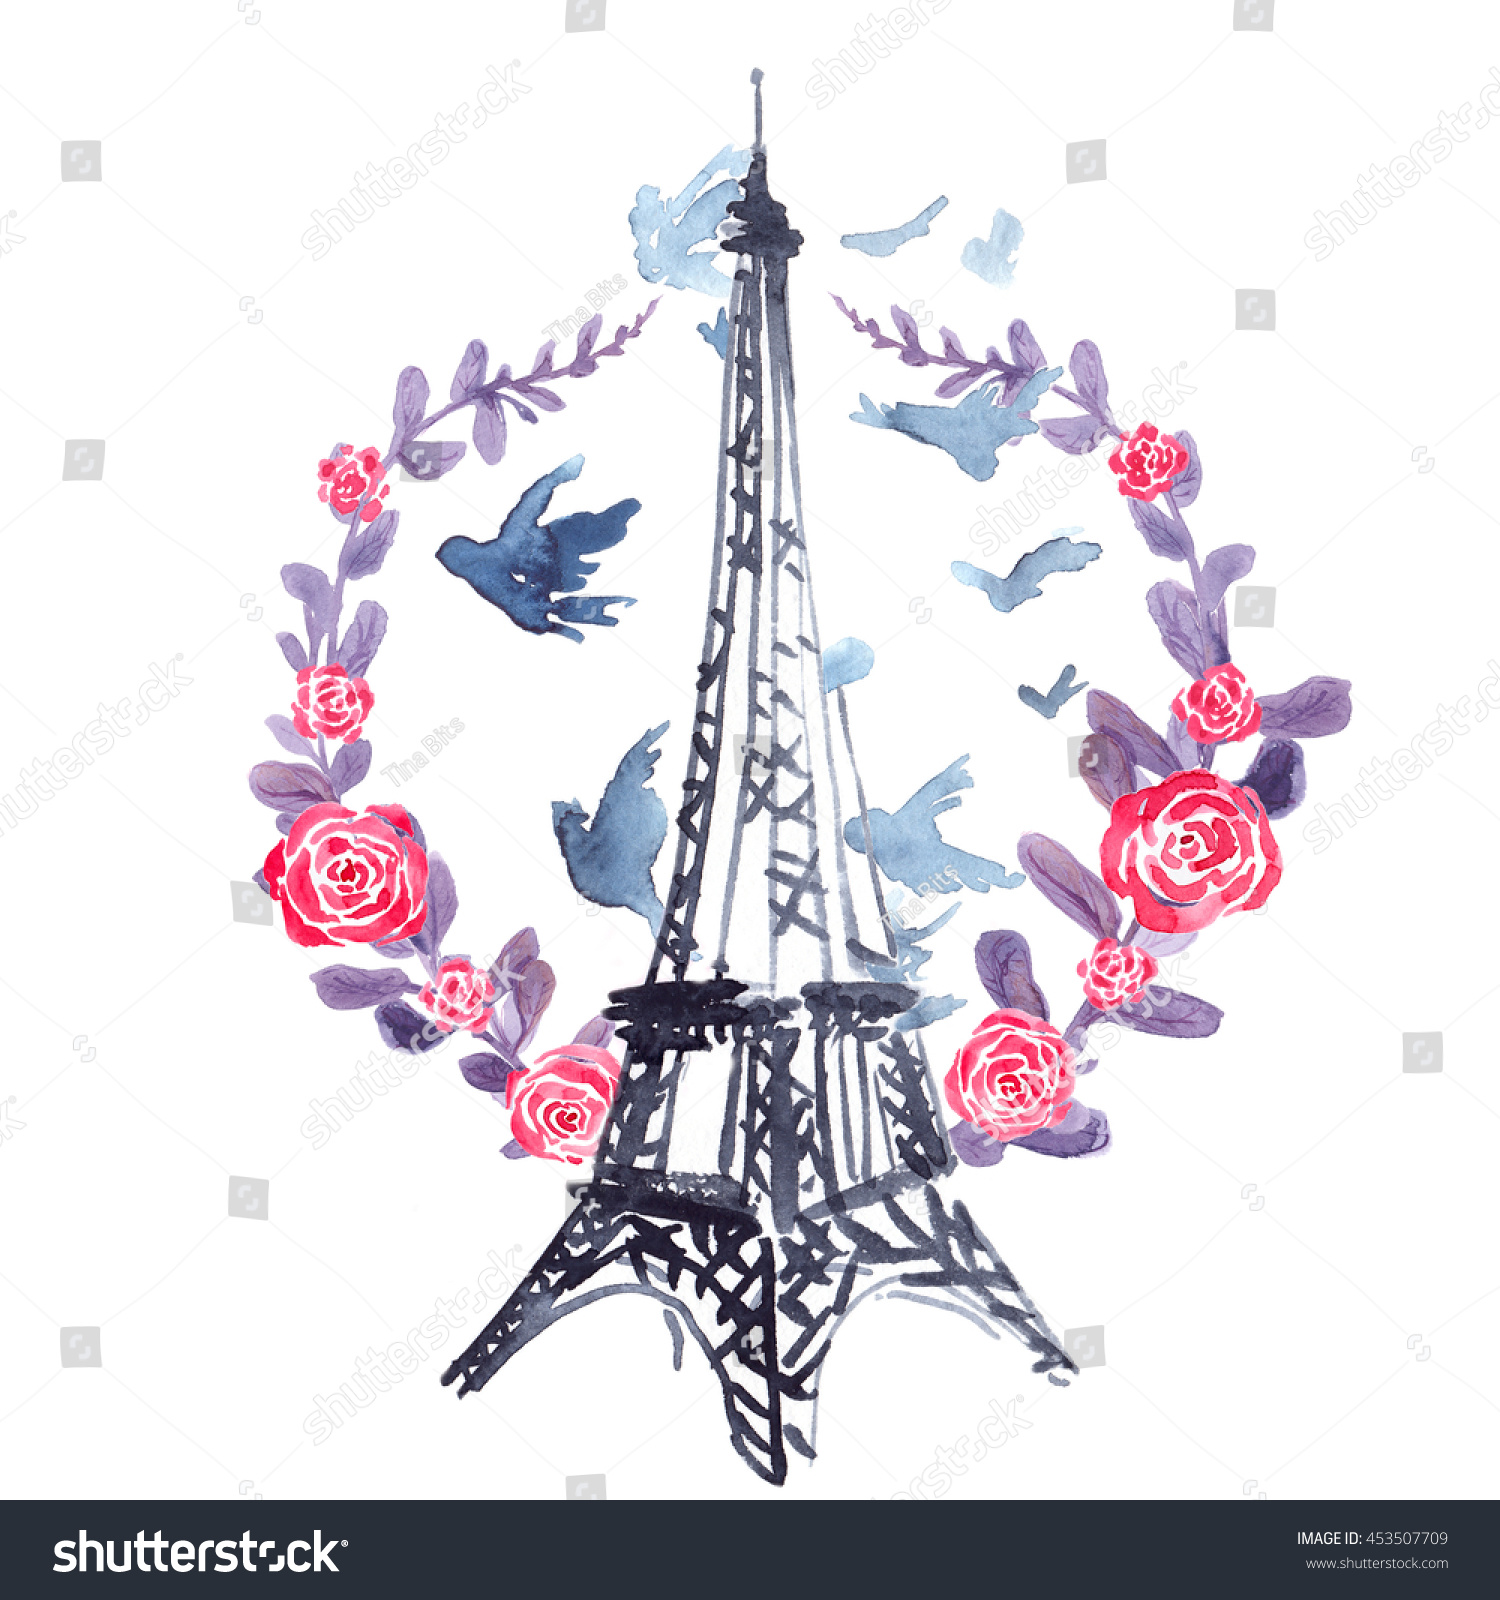 Eiffel Tower In Wreath Of Purple Plants Pink Roses And Flying Birds Painted Watercolor